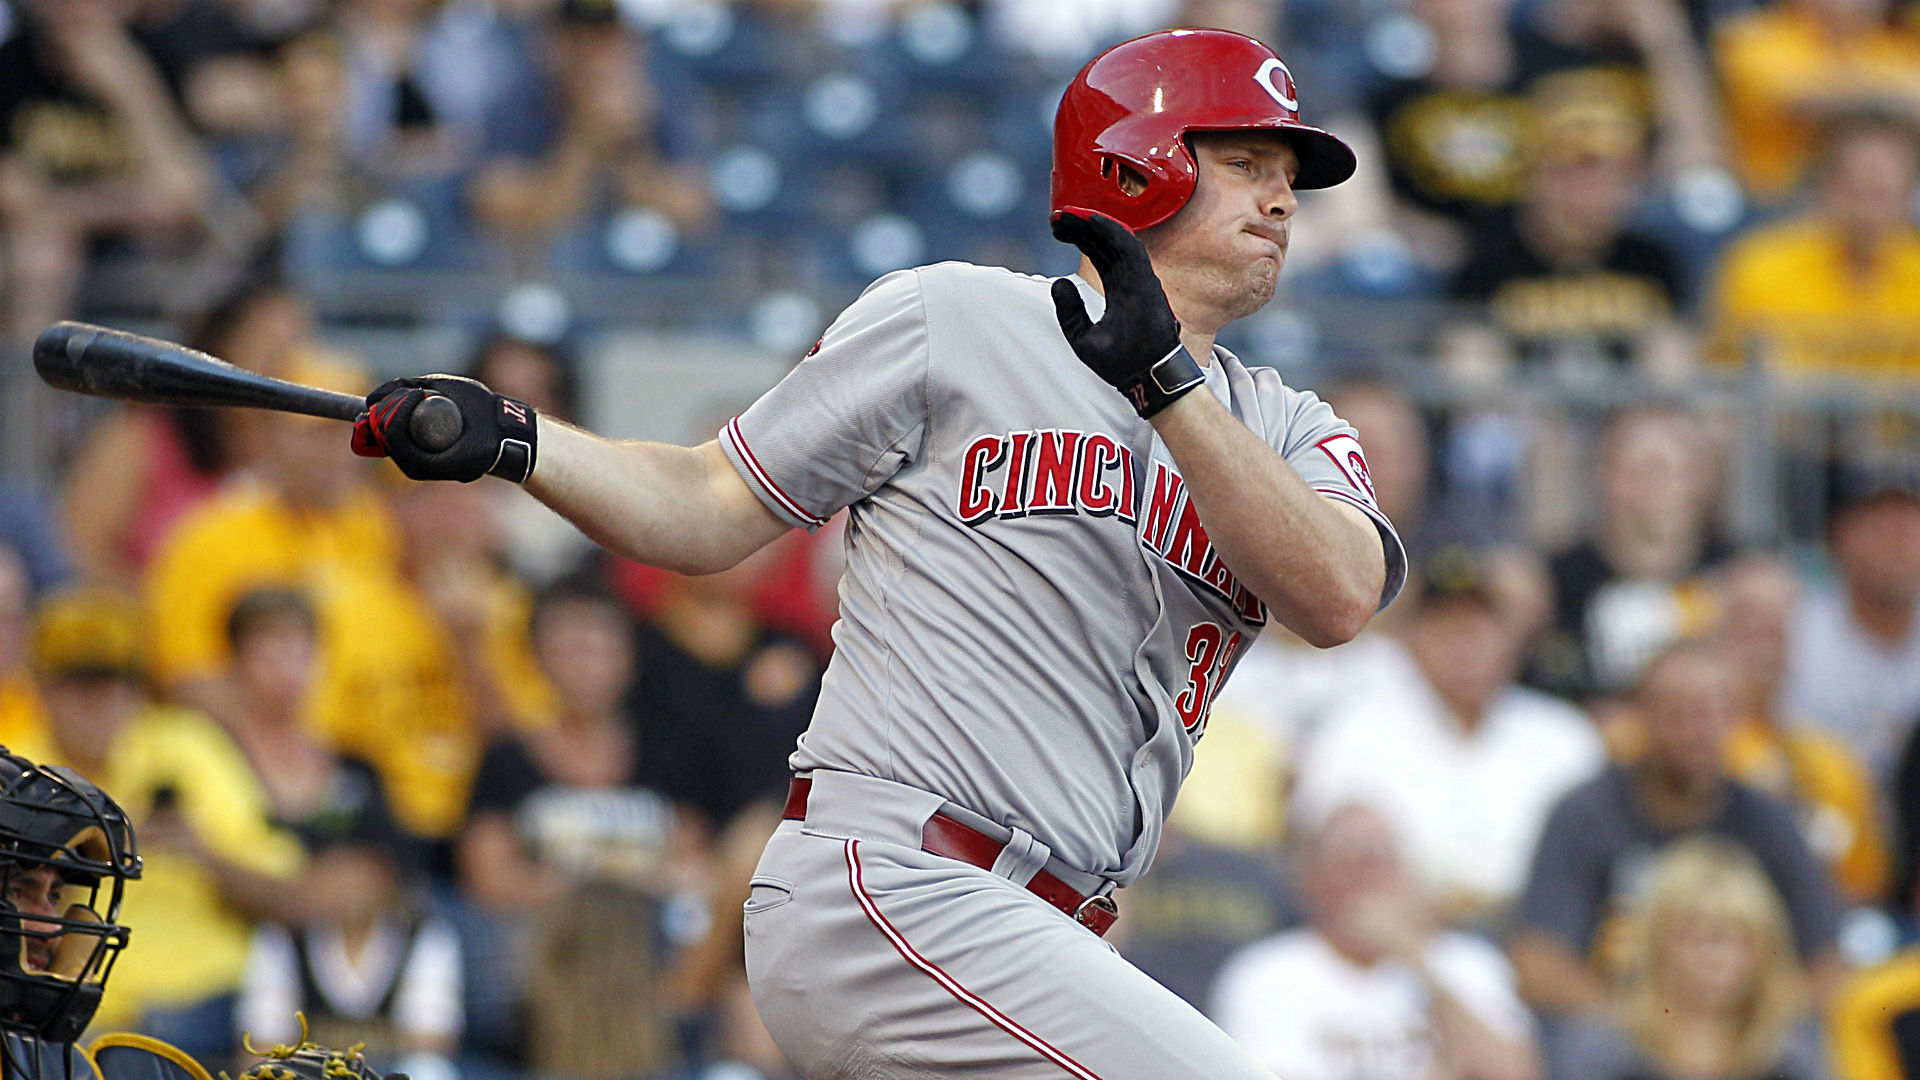 MLB trade rumors: Mets focused on acquiring Jay Bruce from Reds